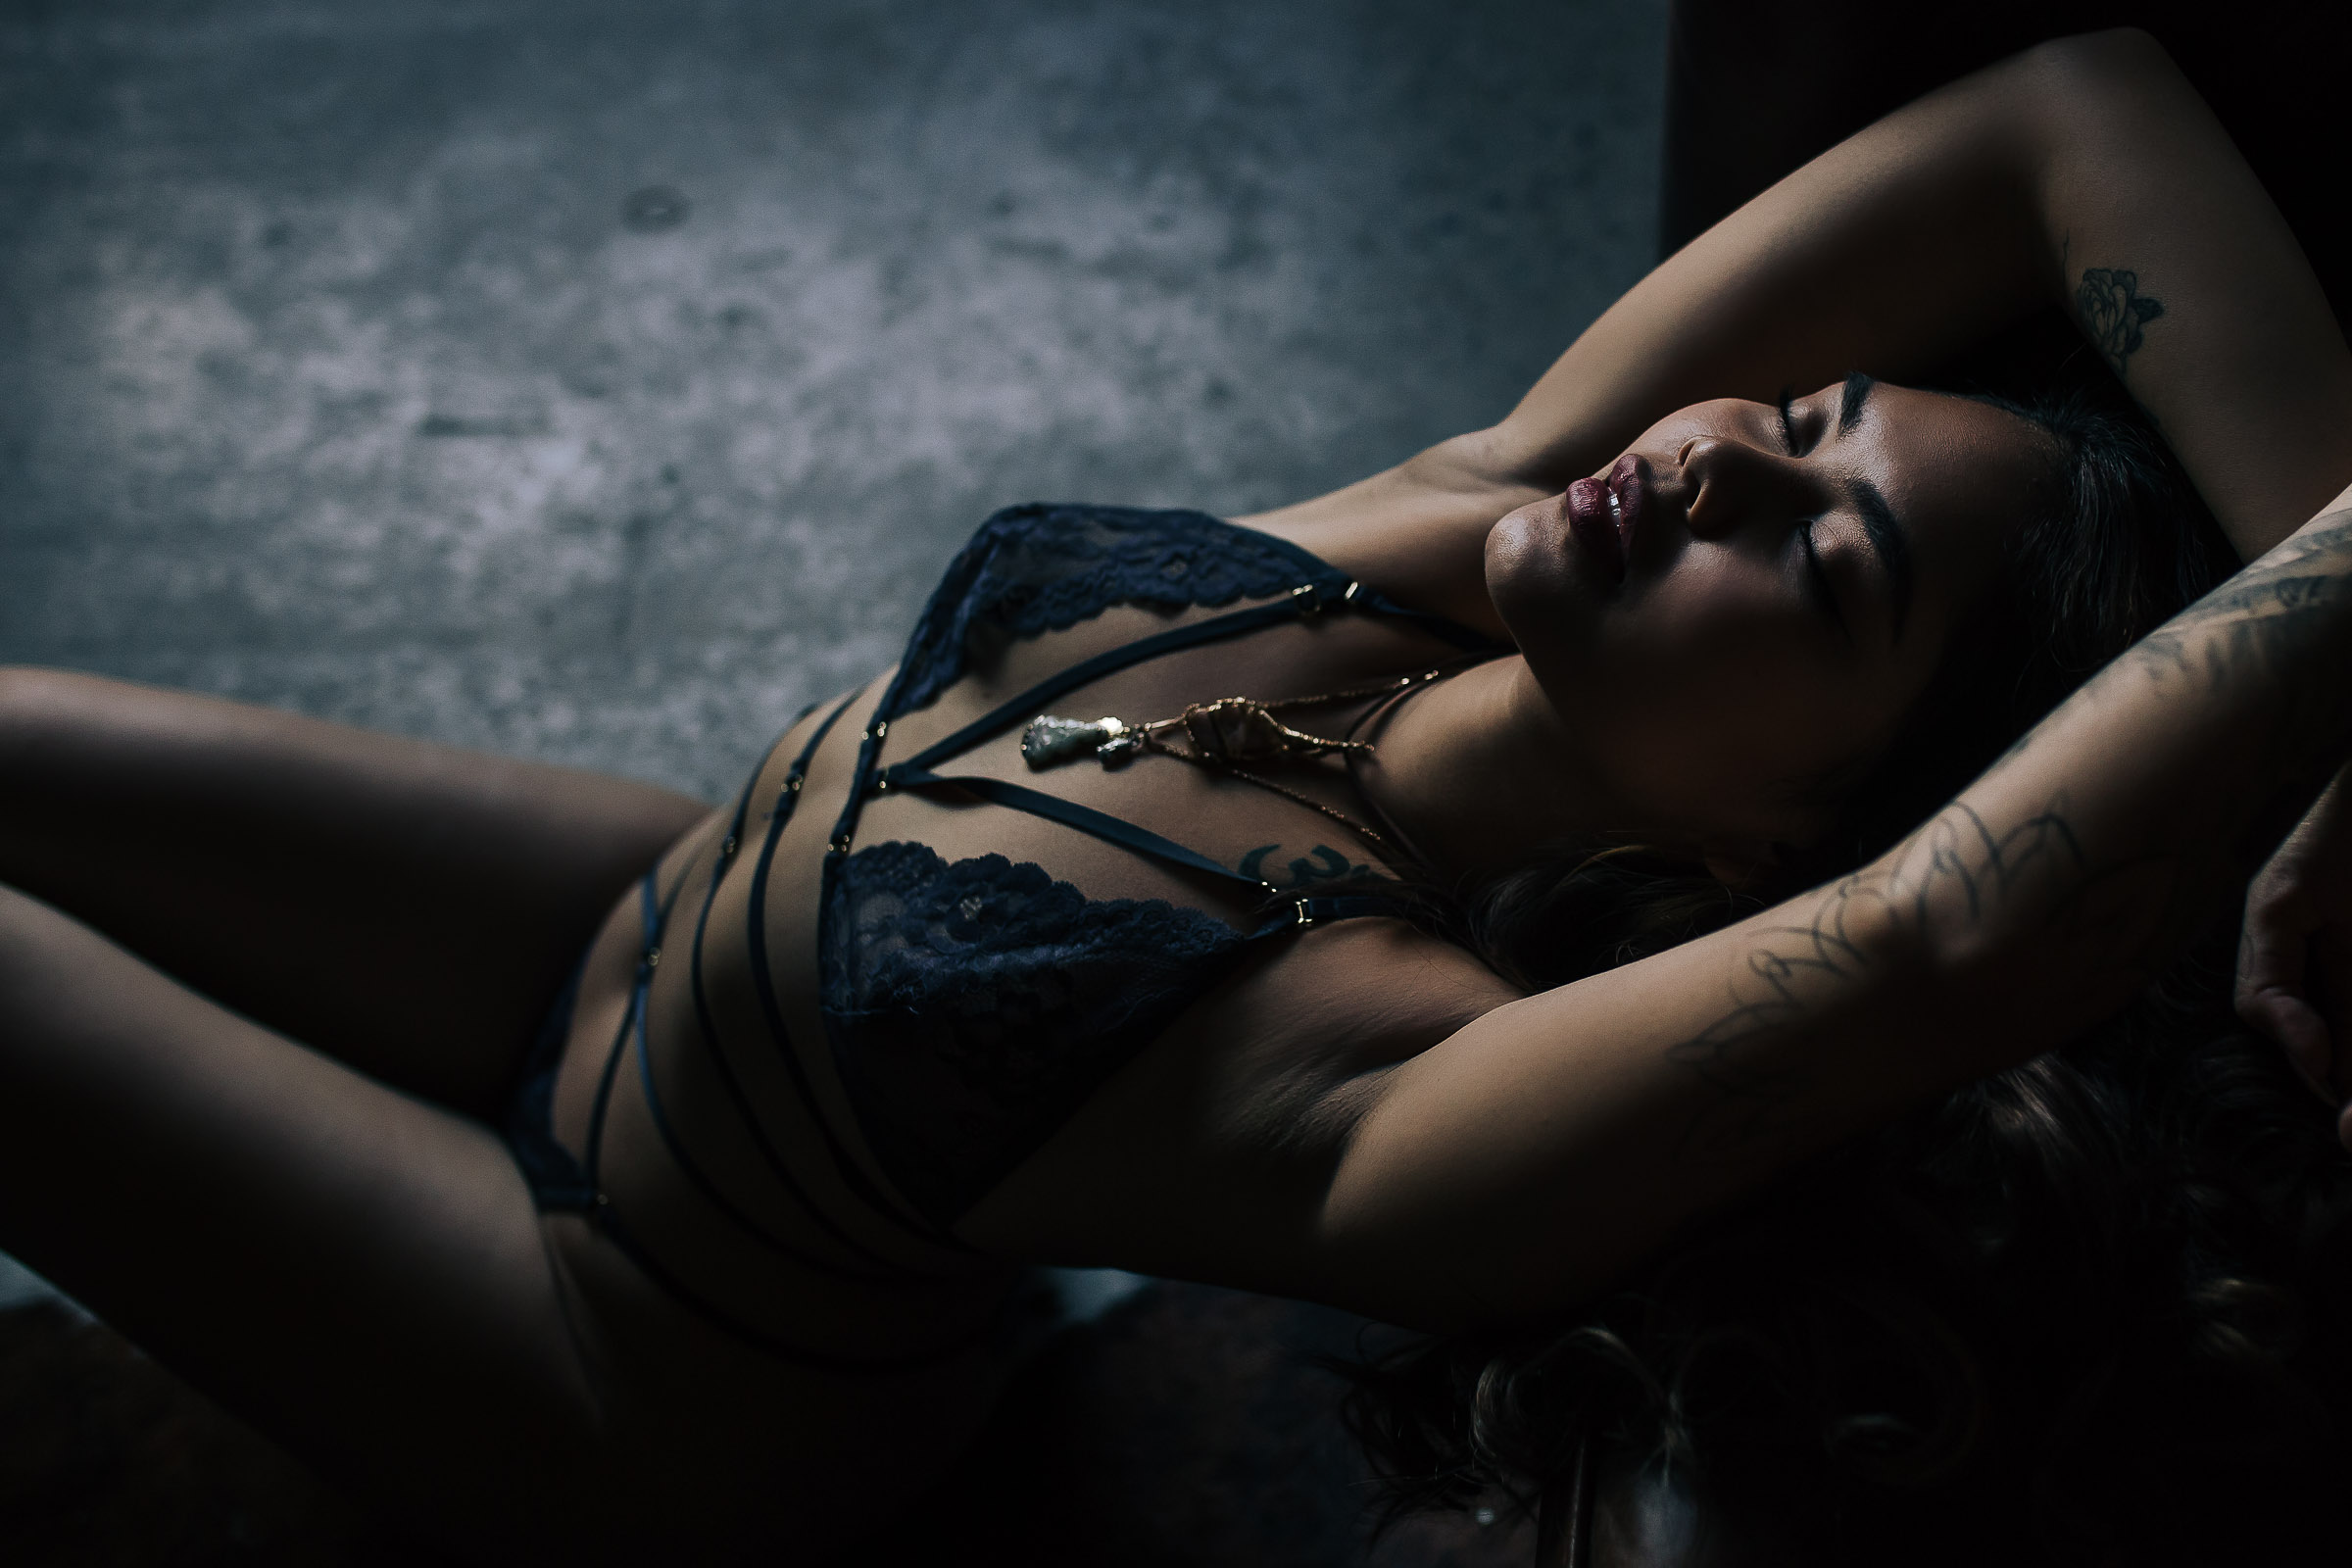 Beautiful Asian woman wearing strappy dark blue lingerie for Toronto boudoir photography session